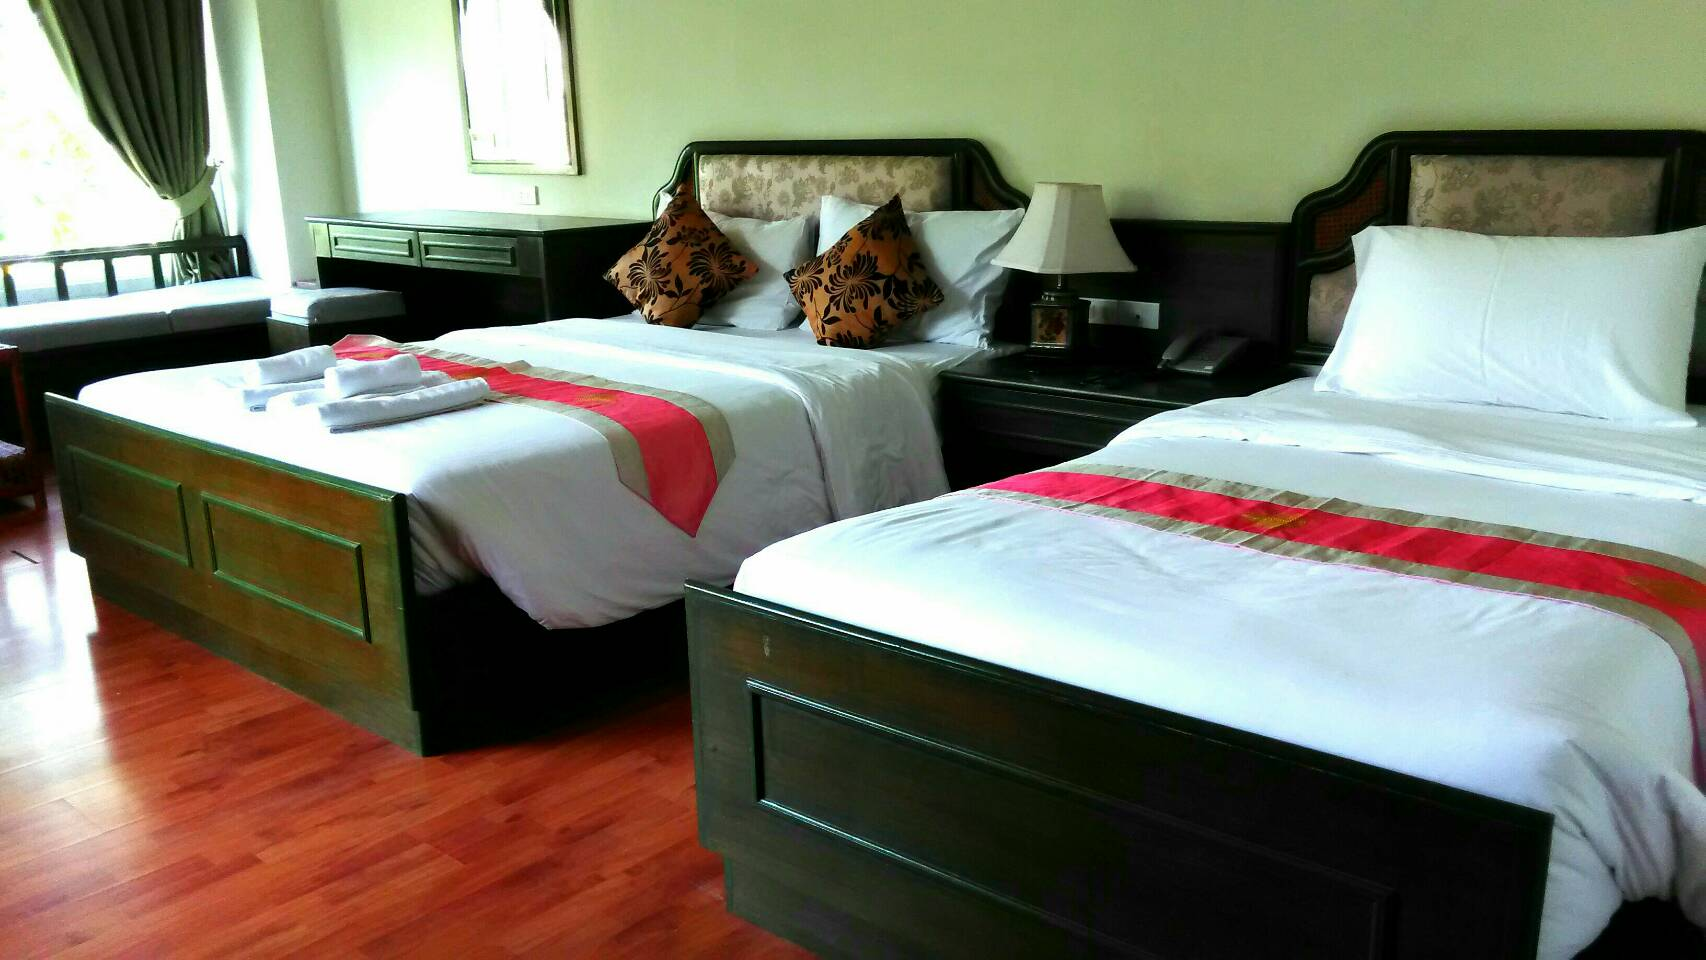 Family Room : 1 double bed, 1 standard bed, and 1 extra bed